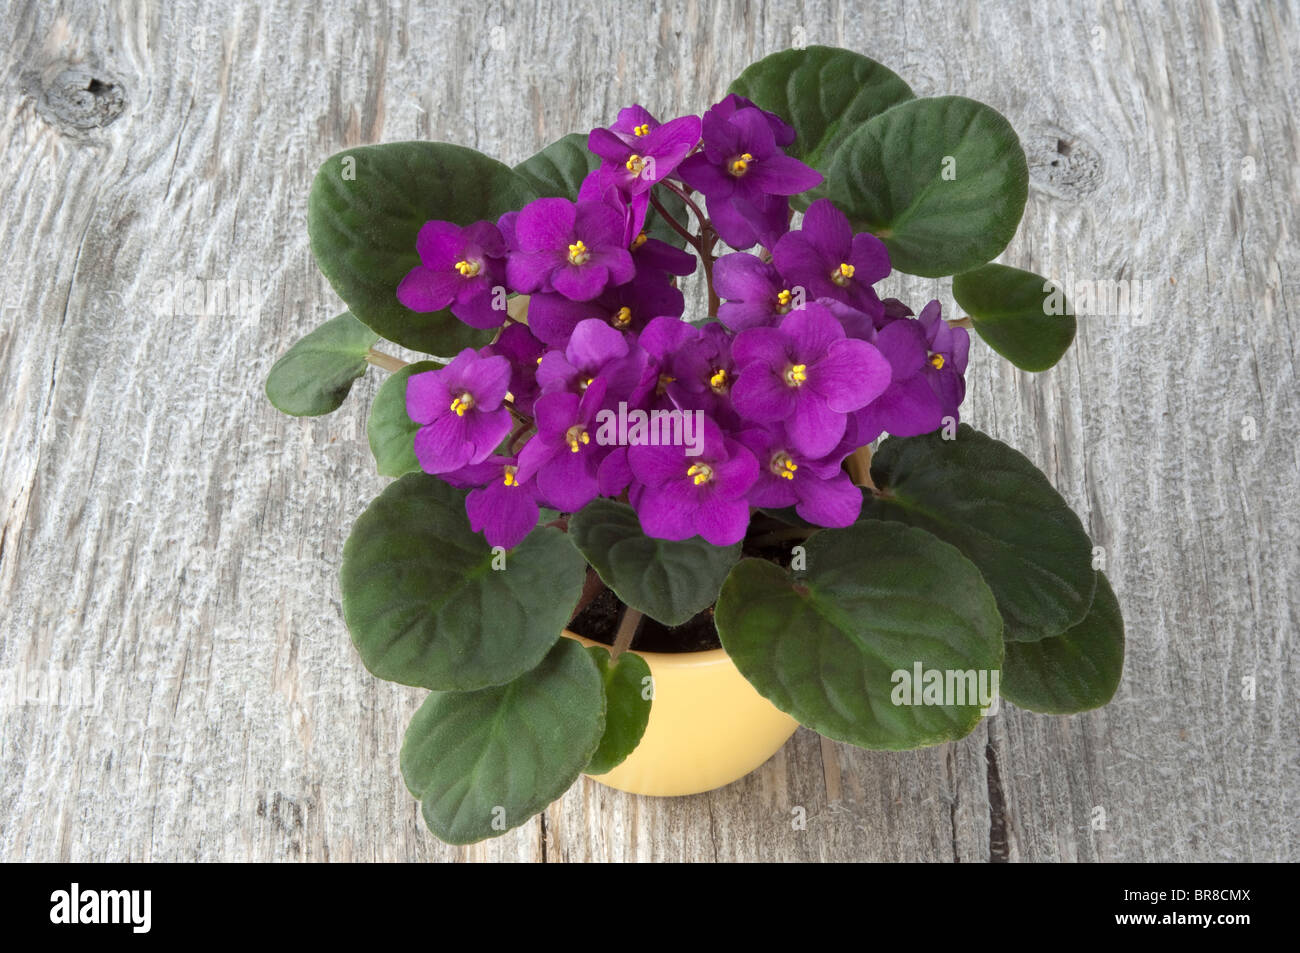 Saintpaulia, African Violet (Saintpaulia ionantha-Hybrid), potted plant with purple flowers on wood. - Stock Image